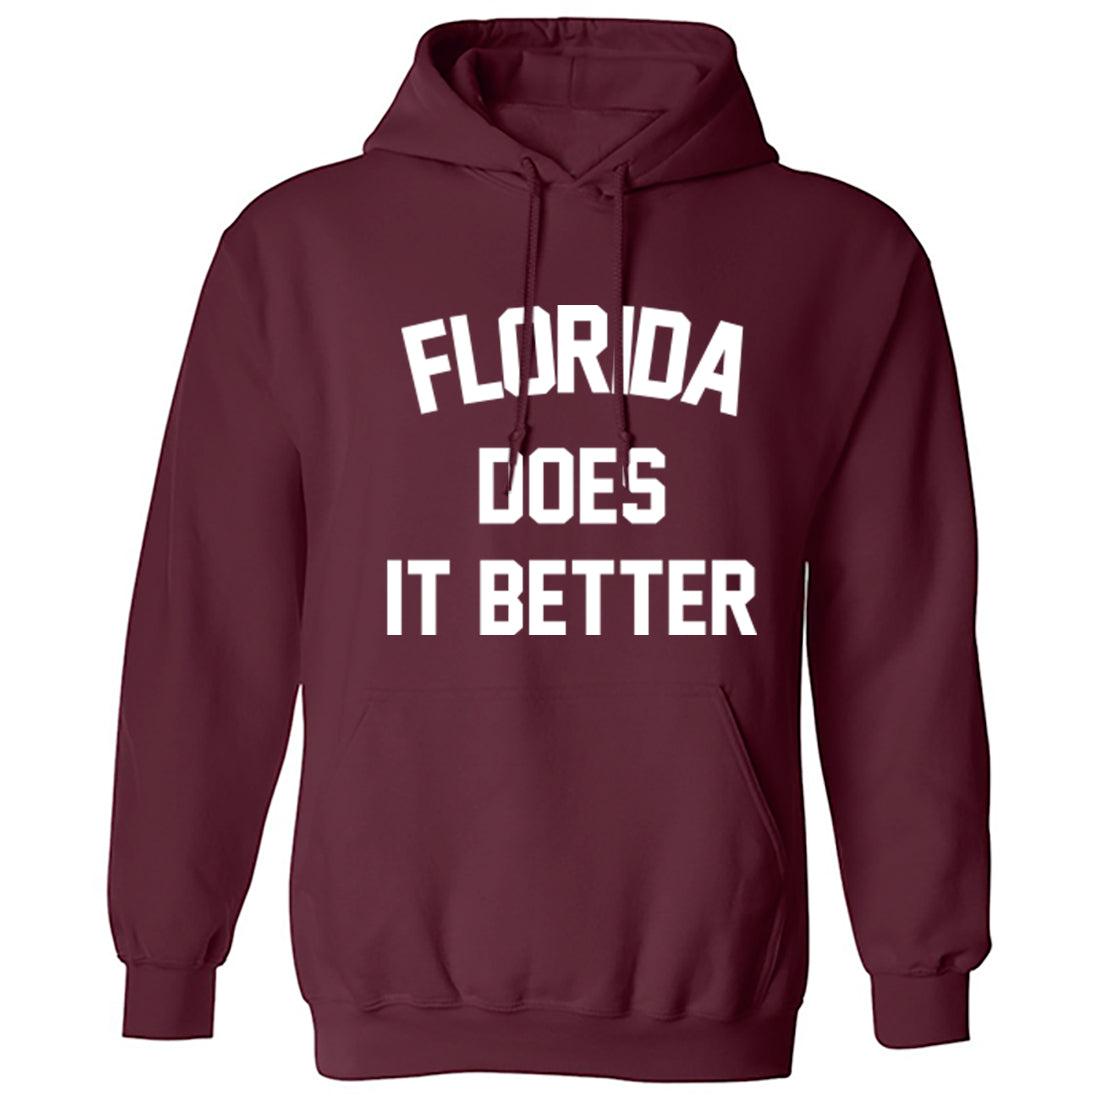 Florida Does Is Better Unisex Hoodie K1148 - Illustrated Identity Ltd.